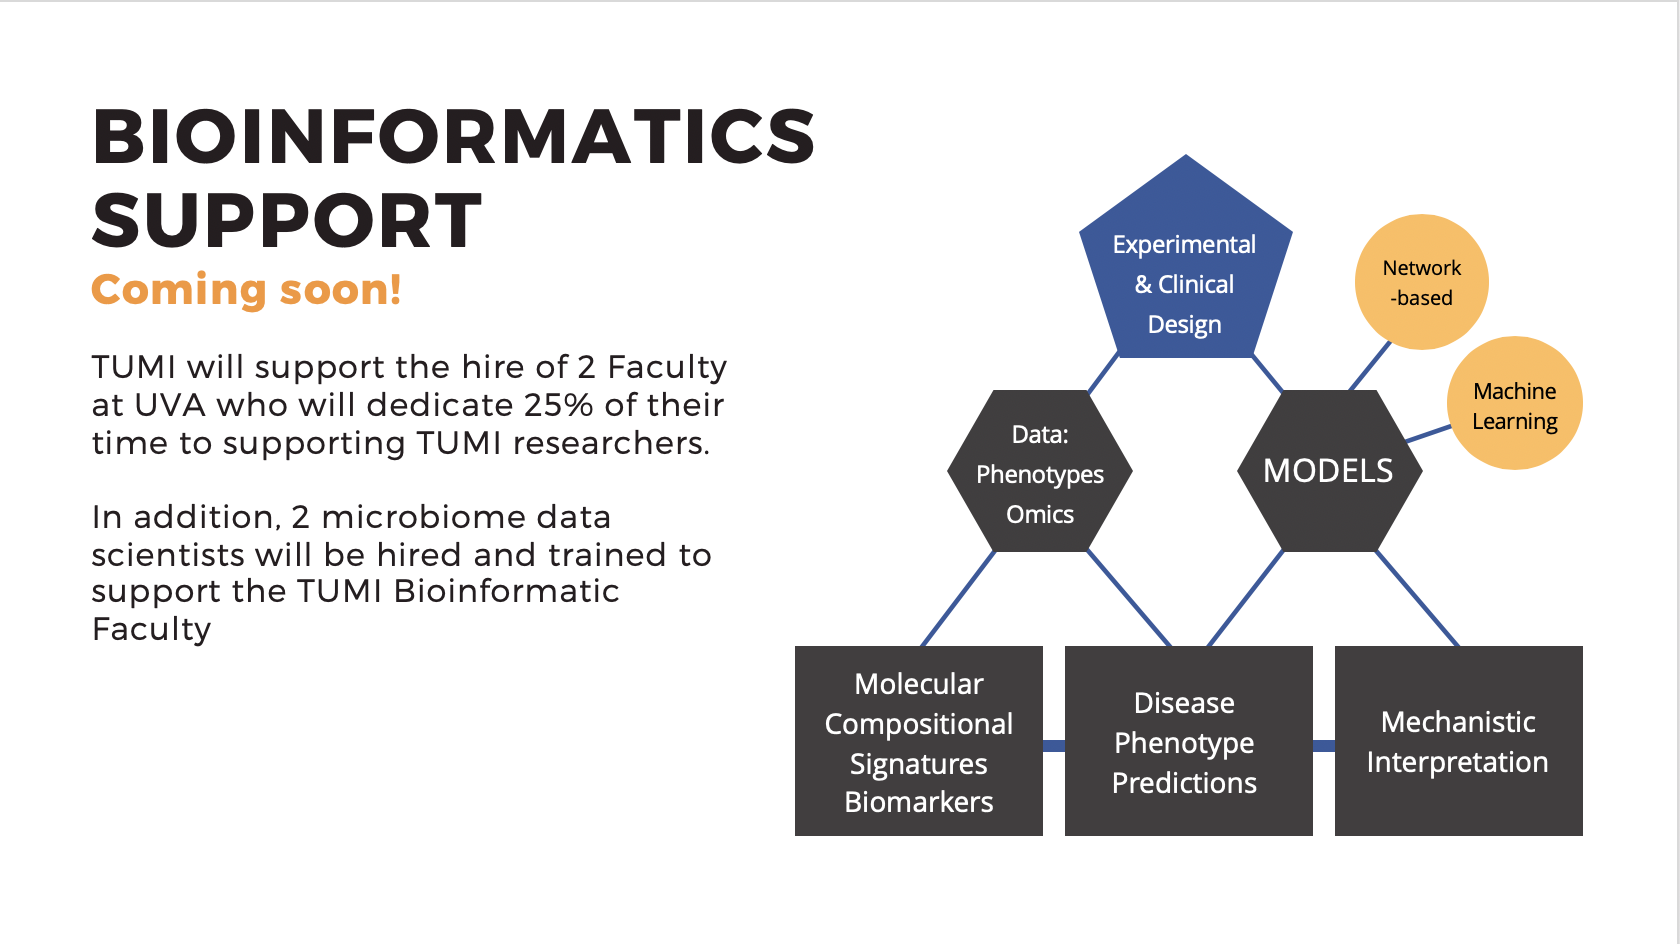 Bioinformatics Support